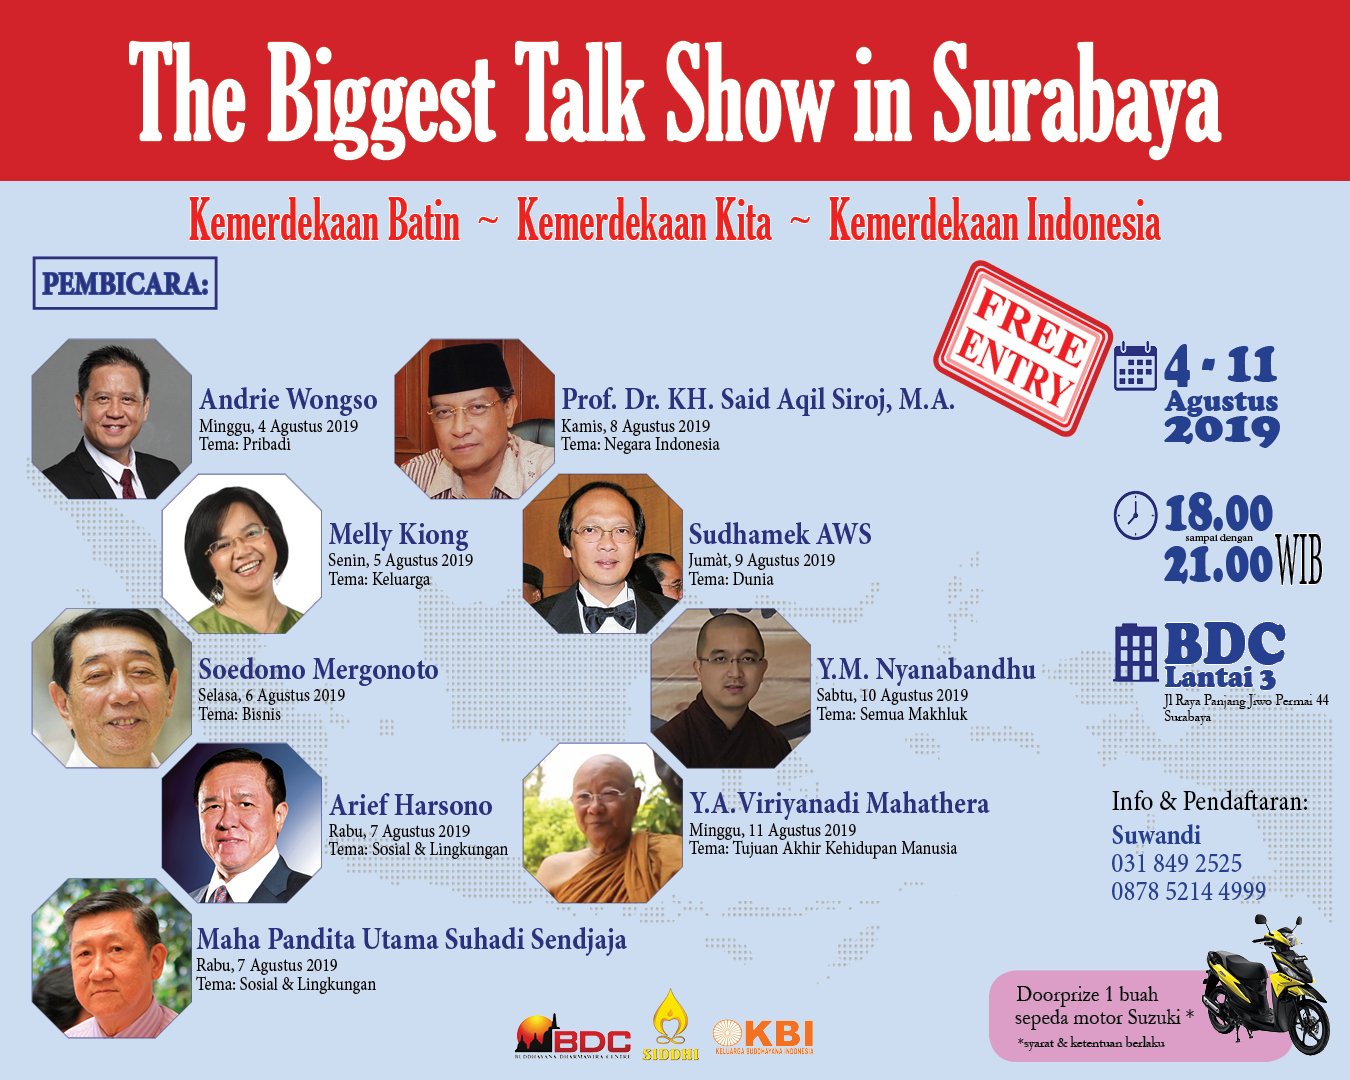 Arek Suroboyo, Ayo Hadir di Acara The Biggest Talk Show